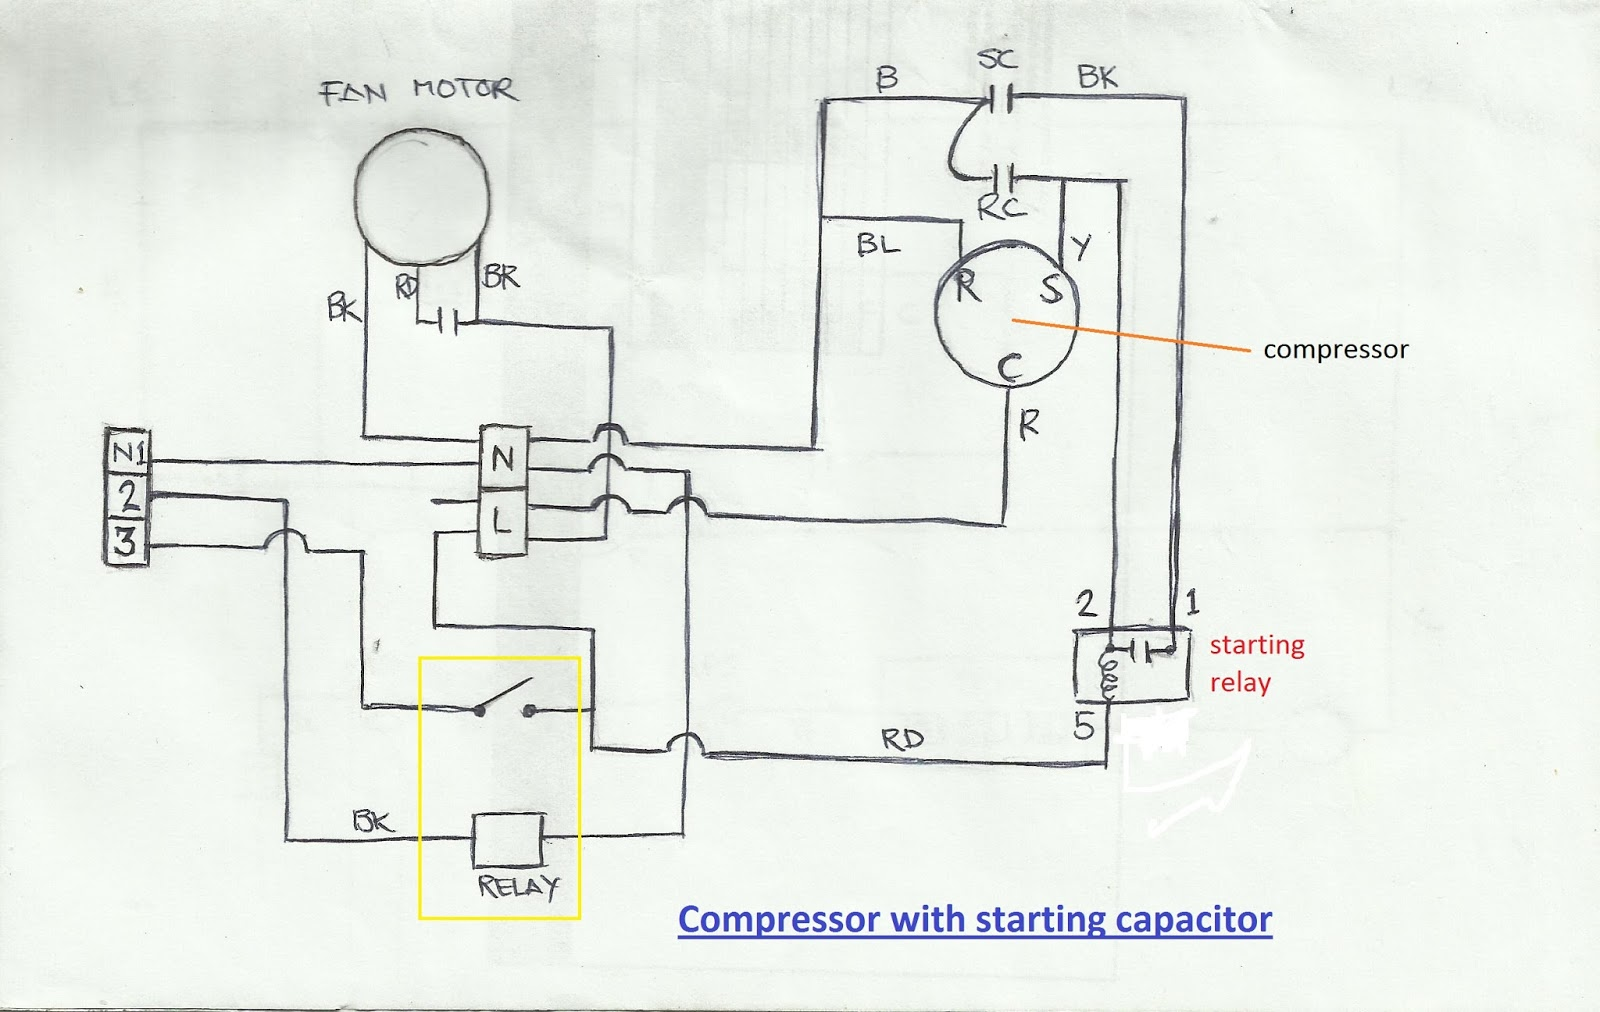 18 refrigeration and air conditioning repair wiring diagram of 1997 f-350 ac compressor wiring schematic at edmiracle.co